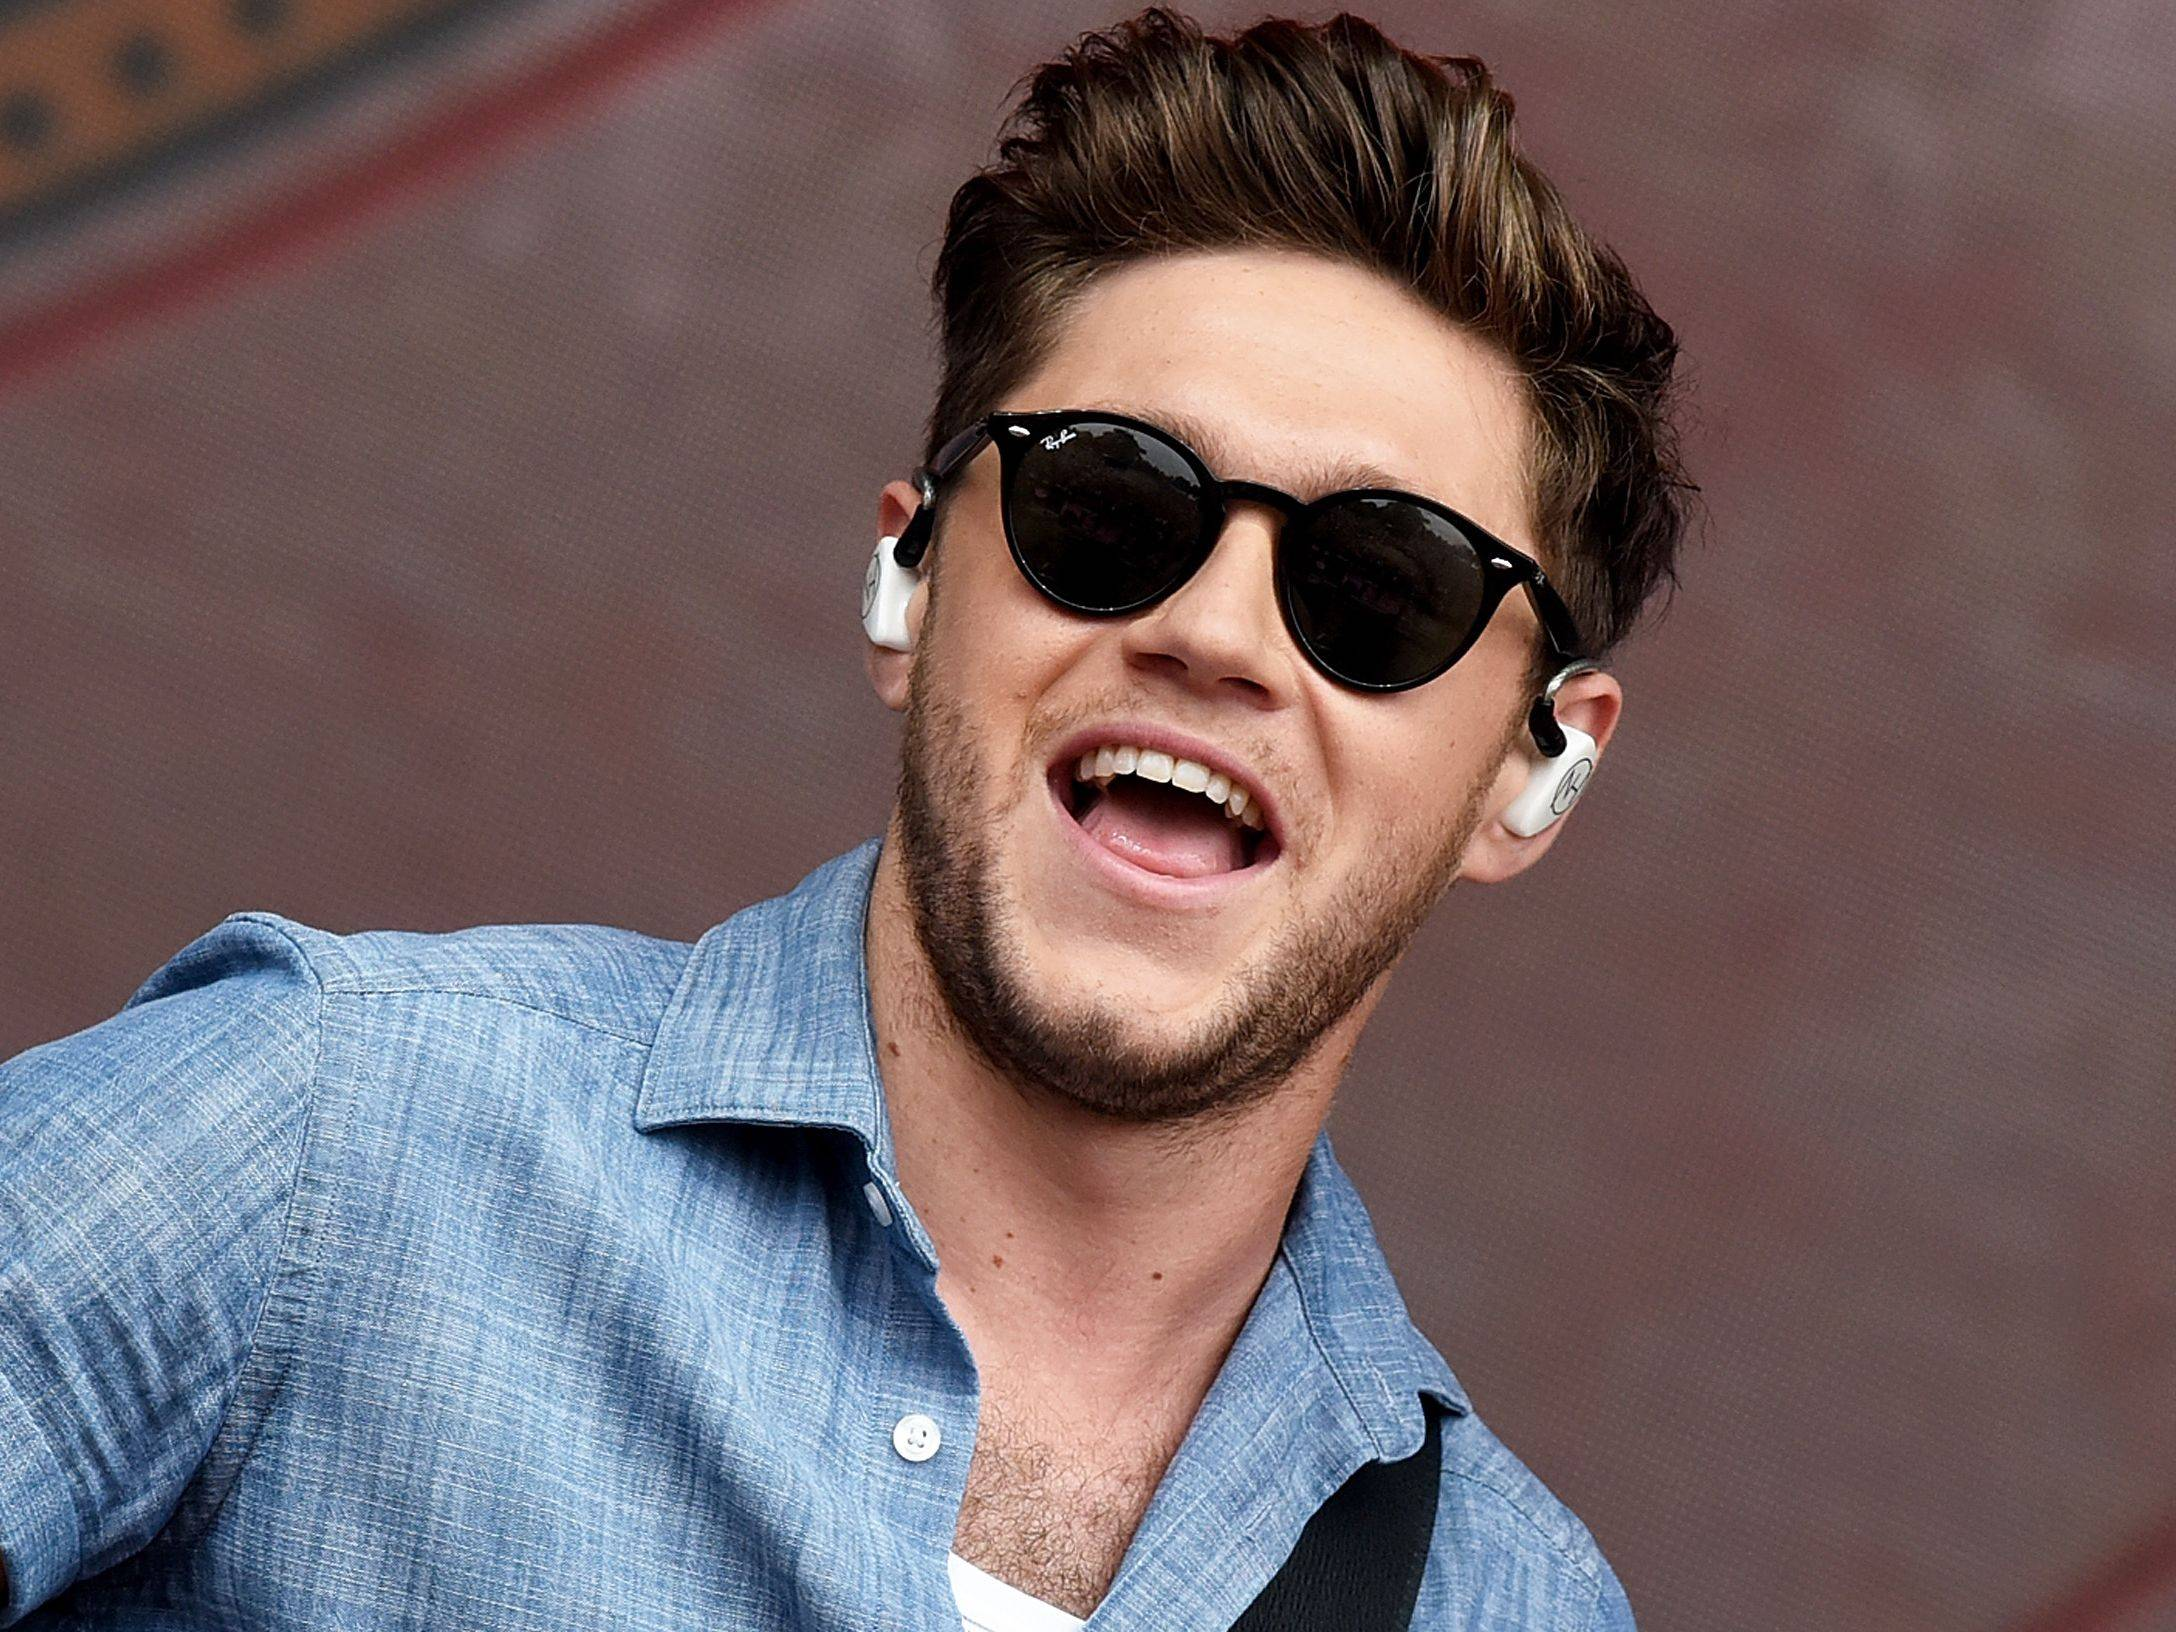 Niall Horan Is 'Finally Free' On His Uplifting New Song